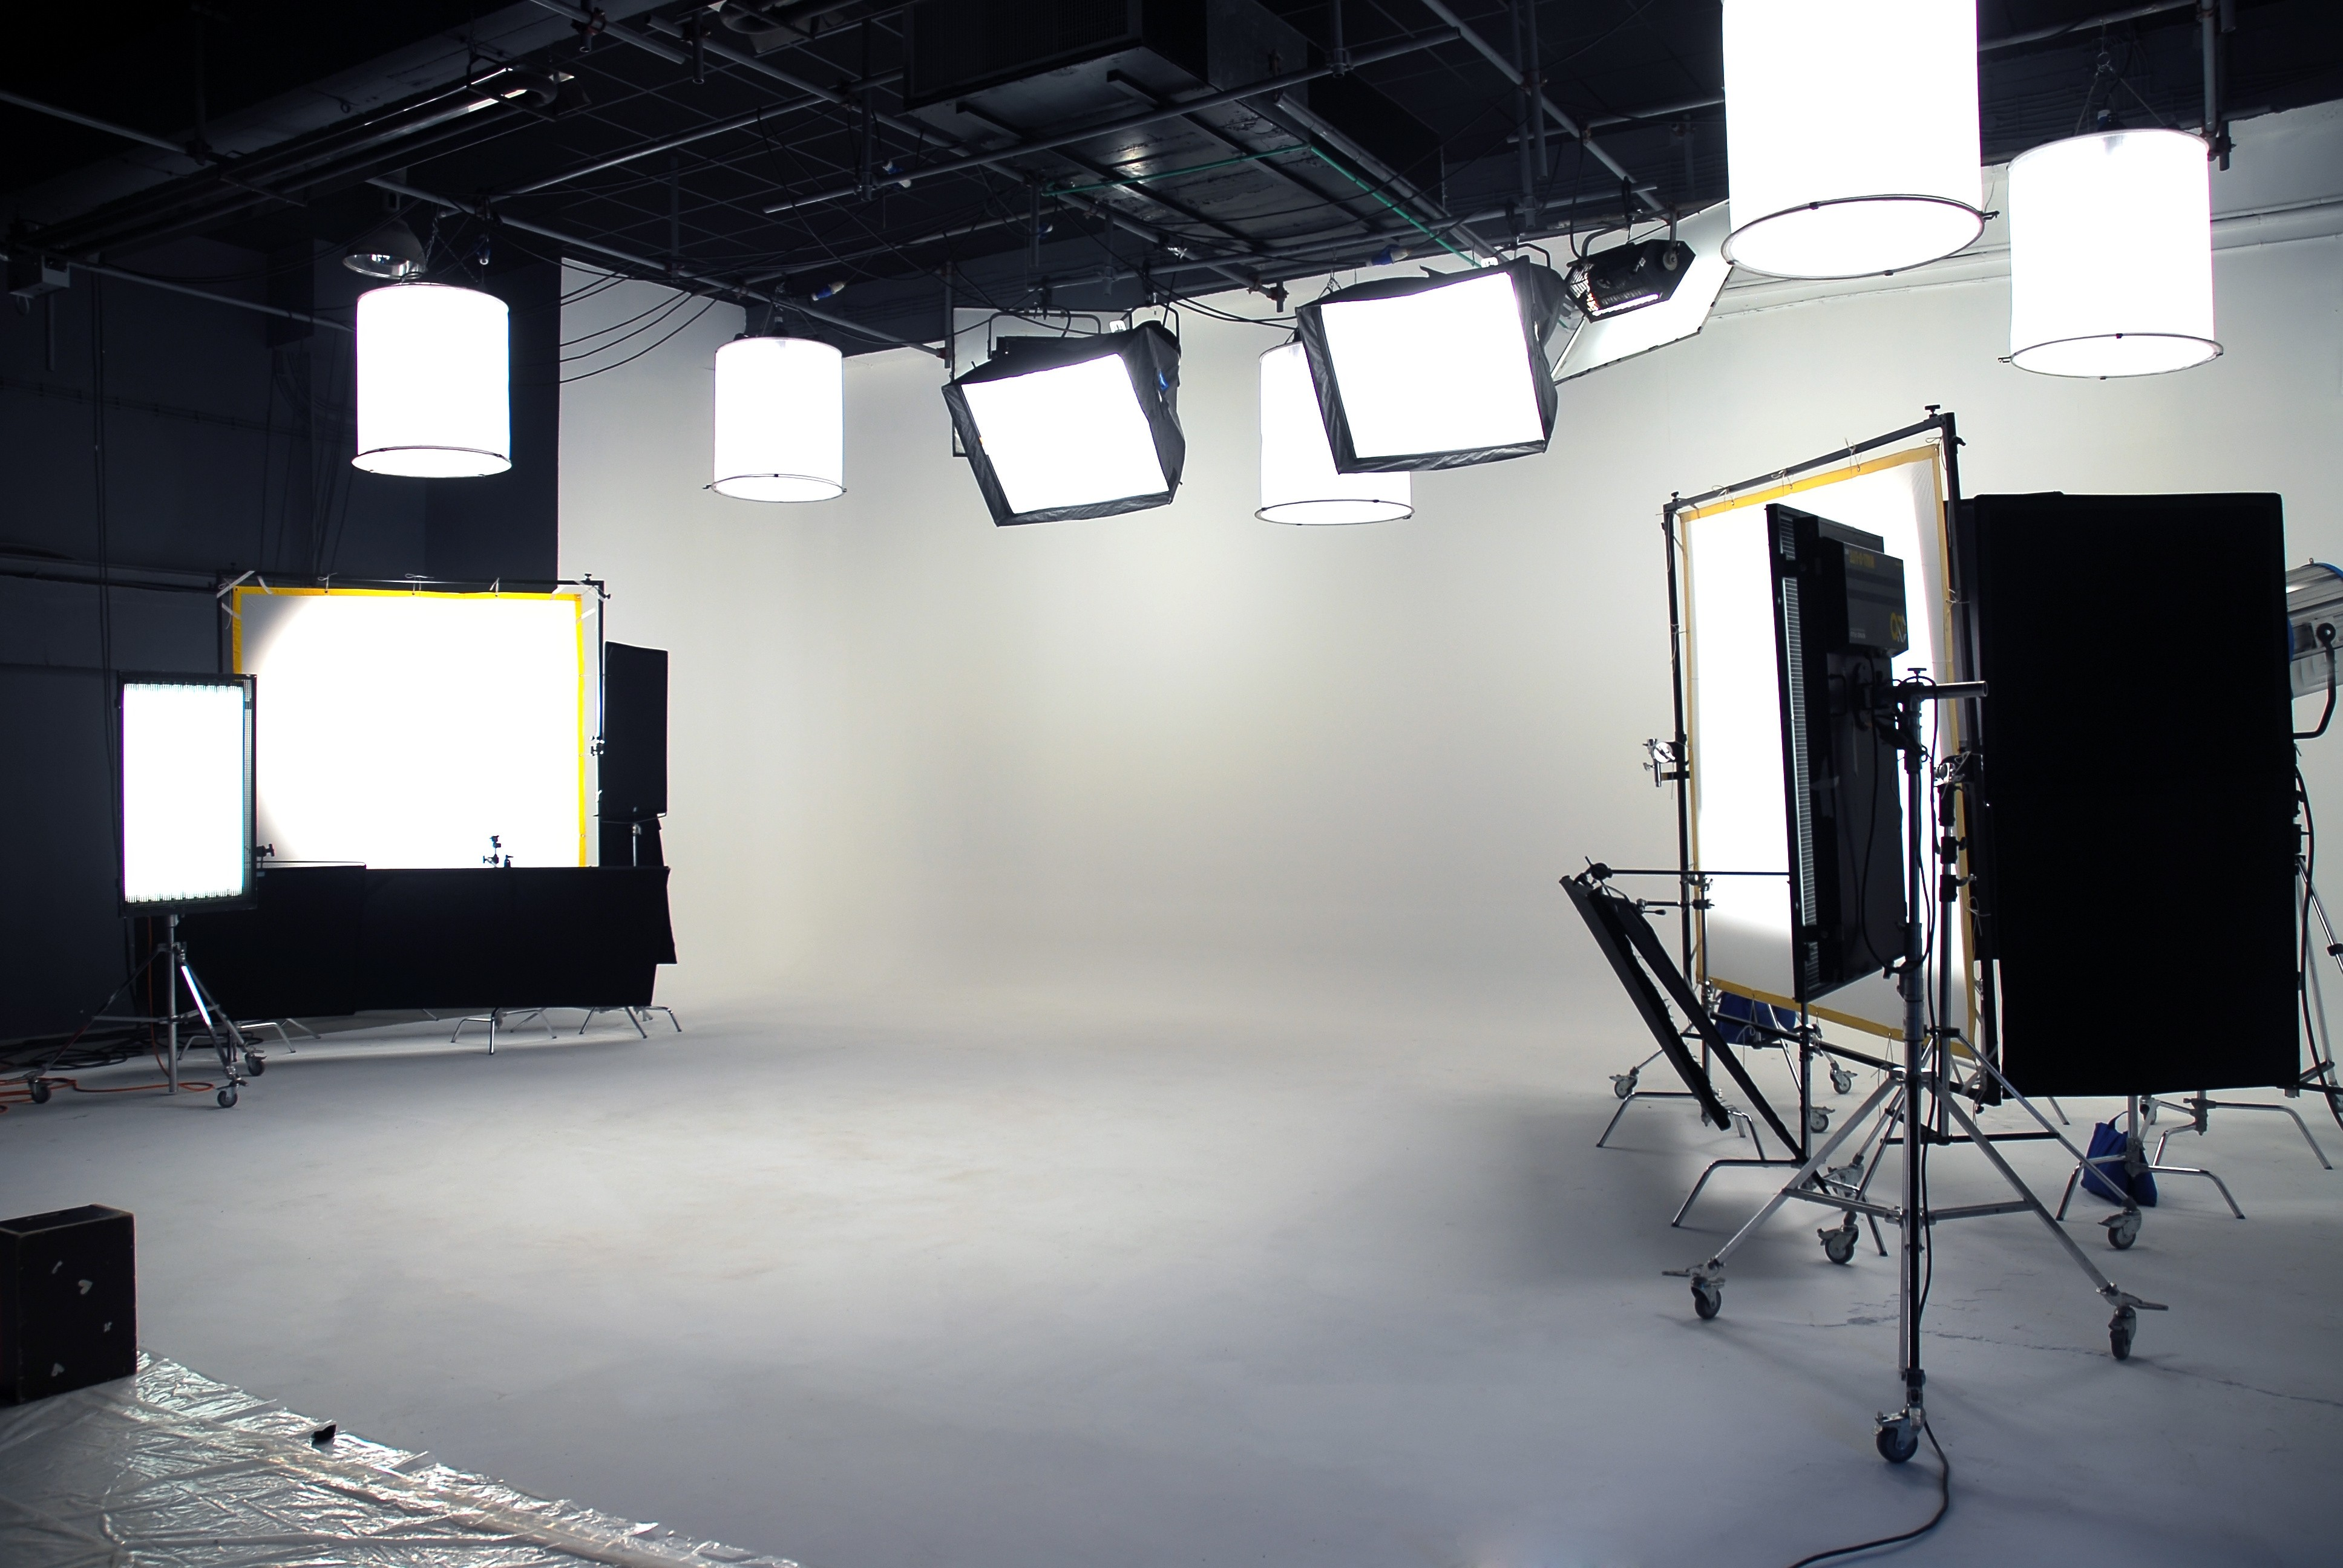 On location webcast and video streaming servcies